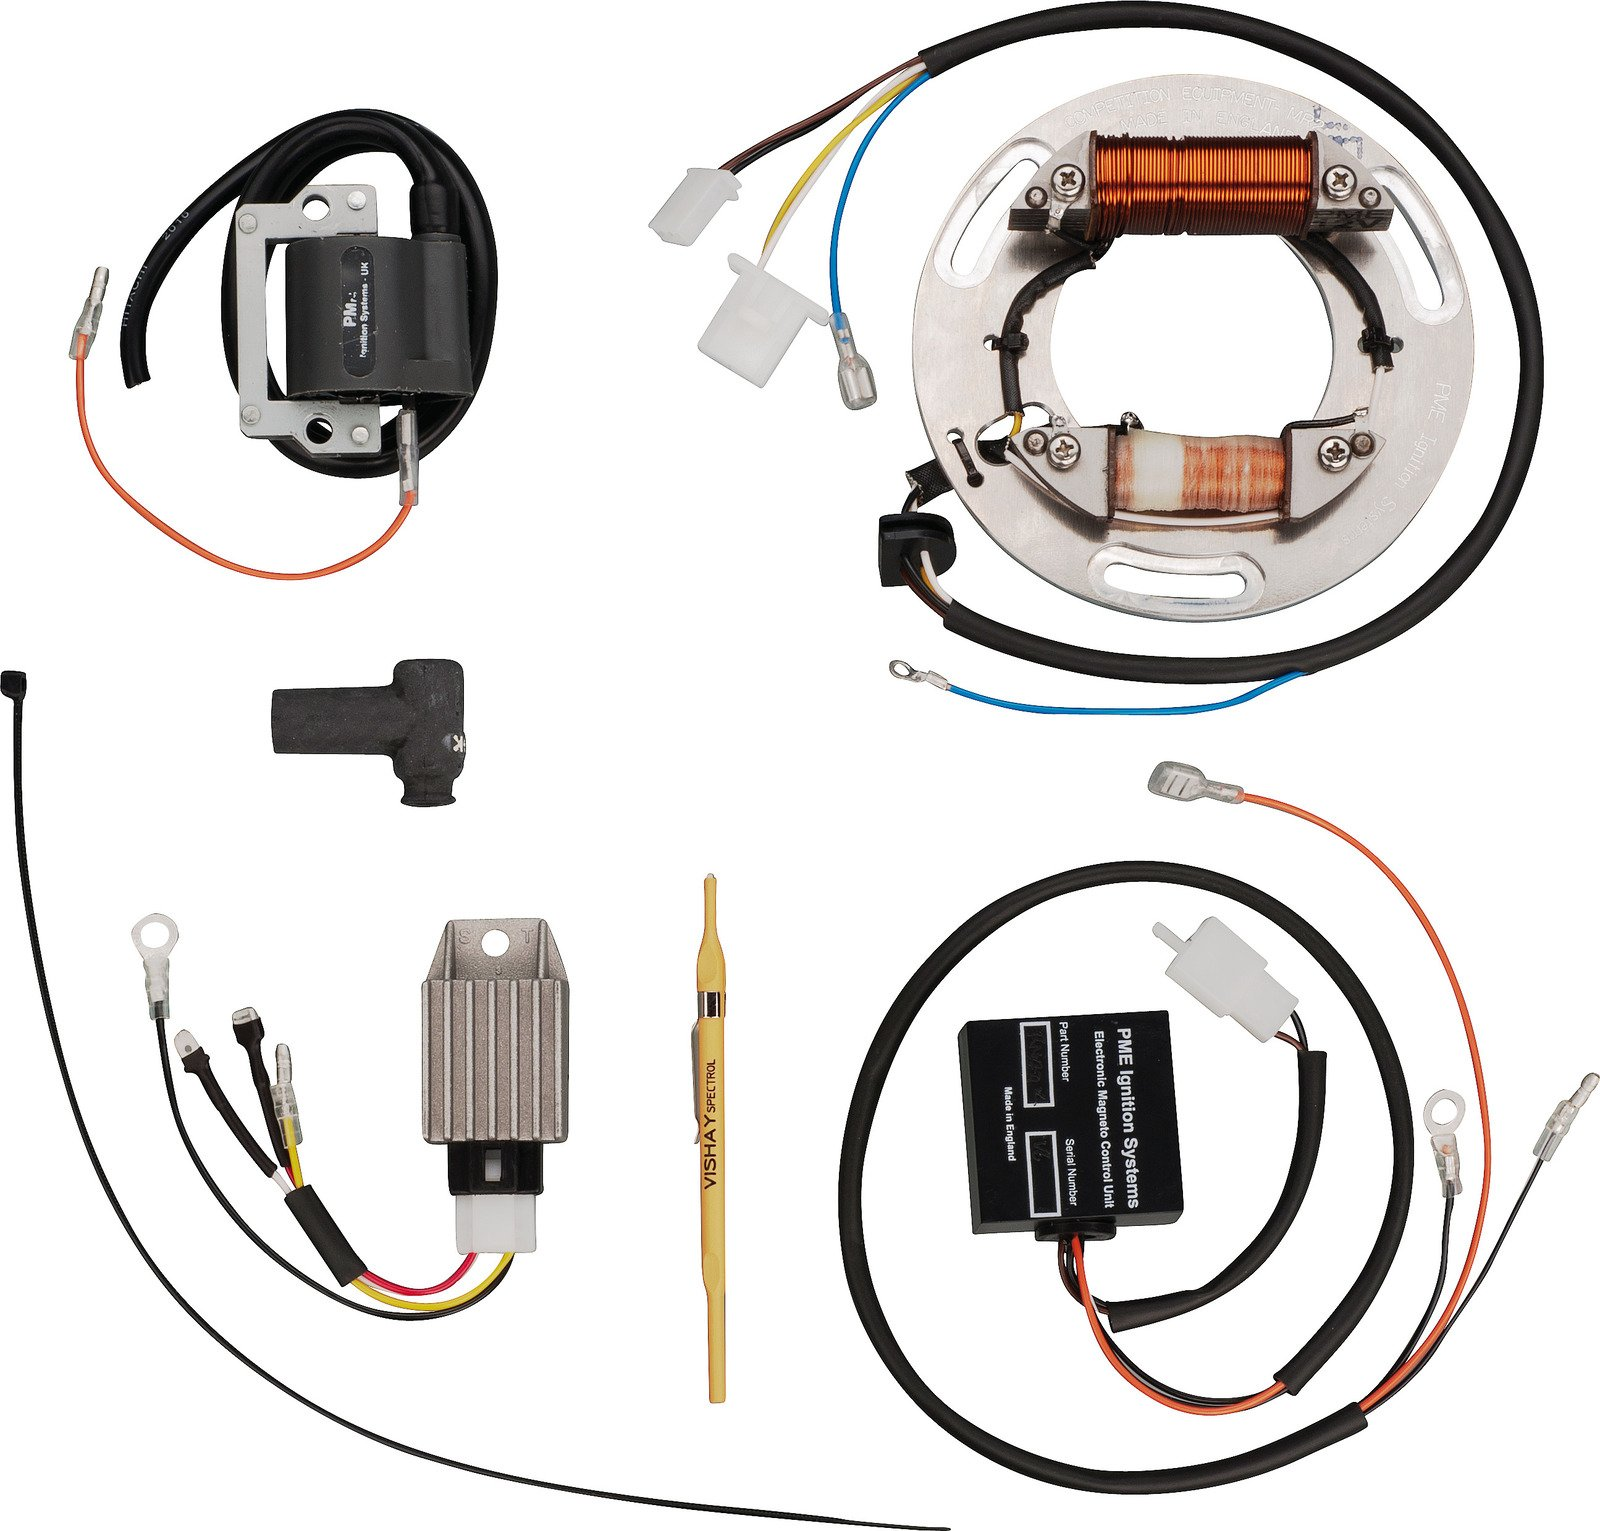 Ignition Supplies (Battery,Contact Breaker, Flywheel-Magneto